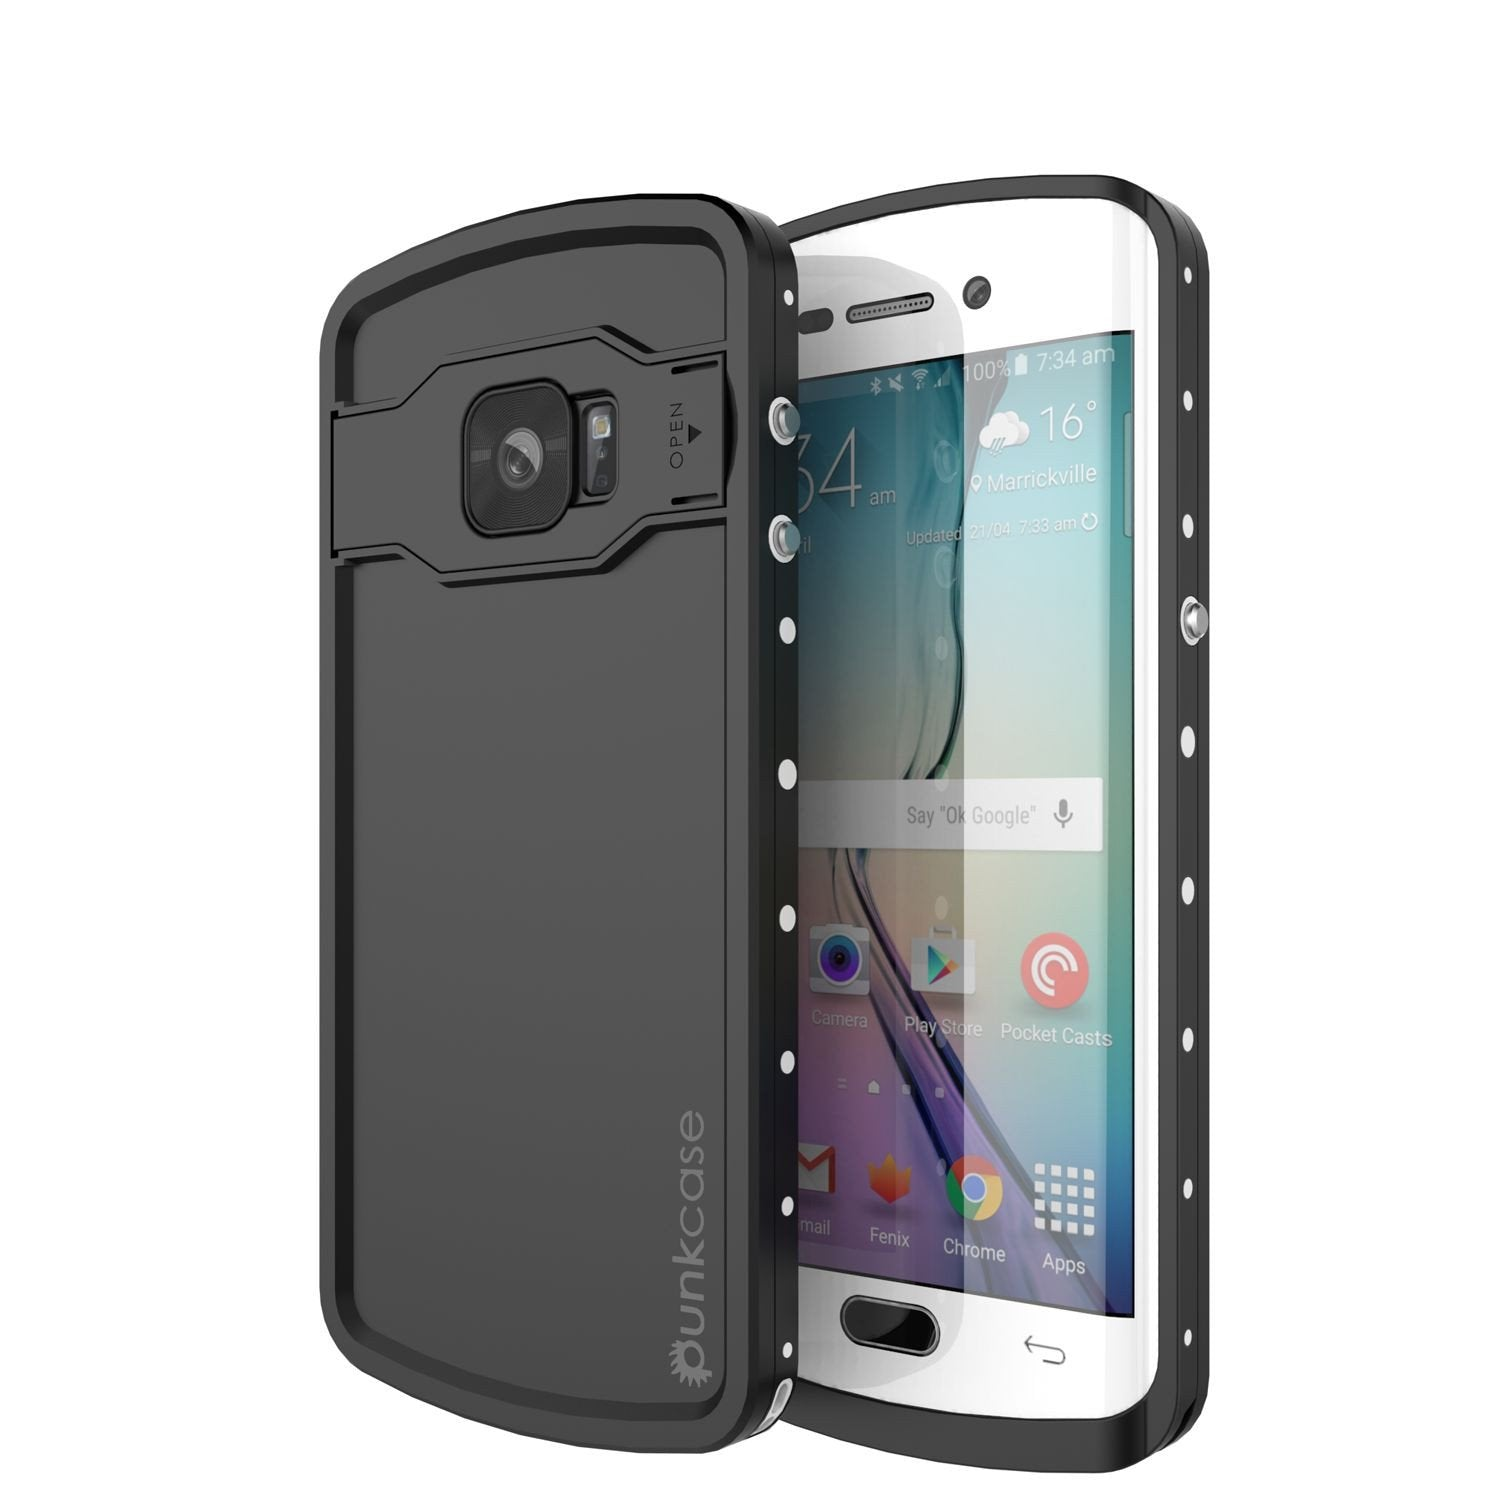 Galaxy S6 EDGE Plus Waterproof Case, Punkcase StudStar White Shock/Dirt Proof | Lifetime Warranty